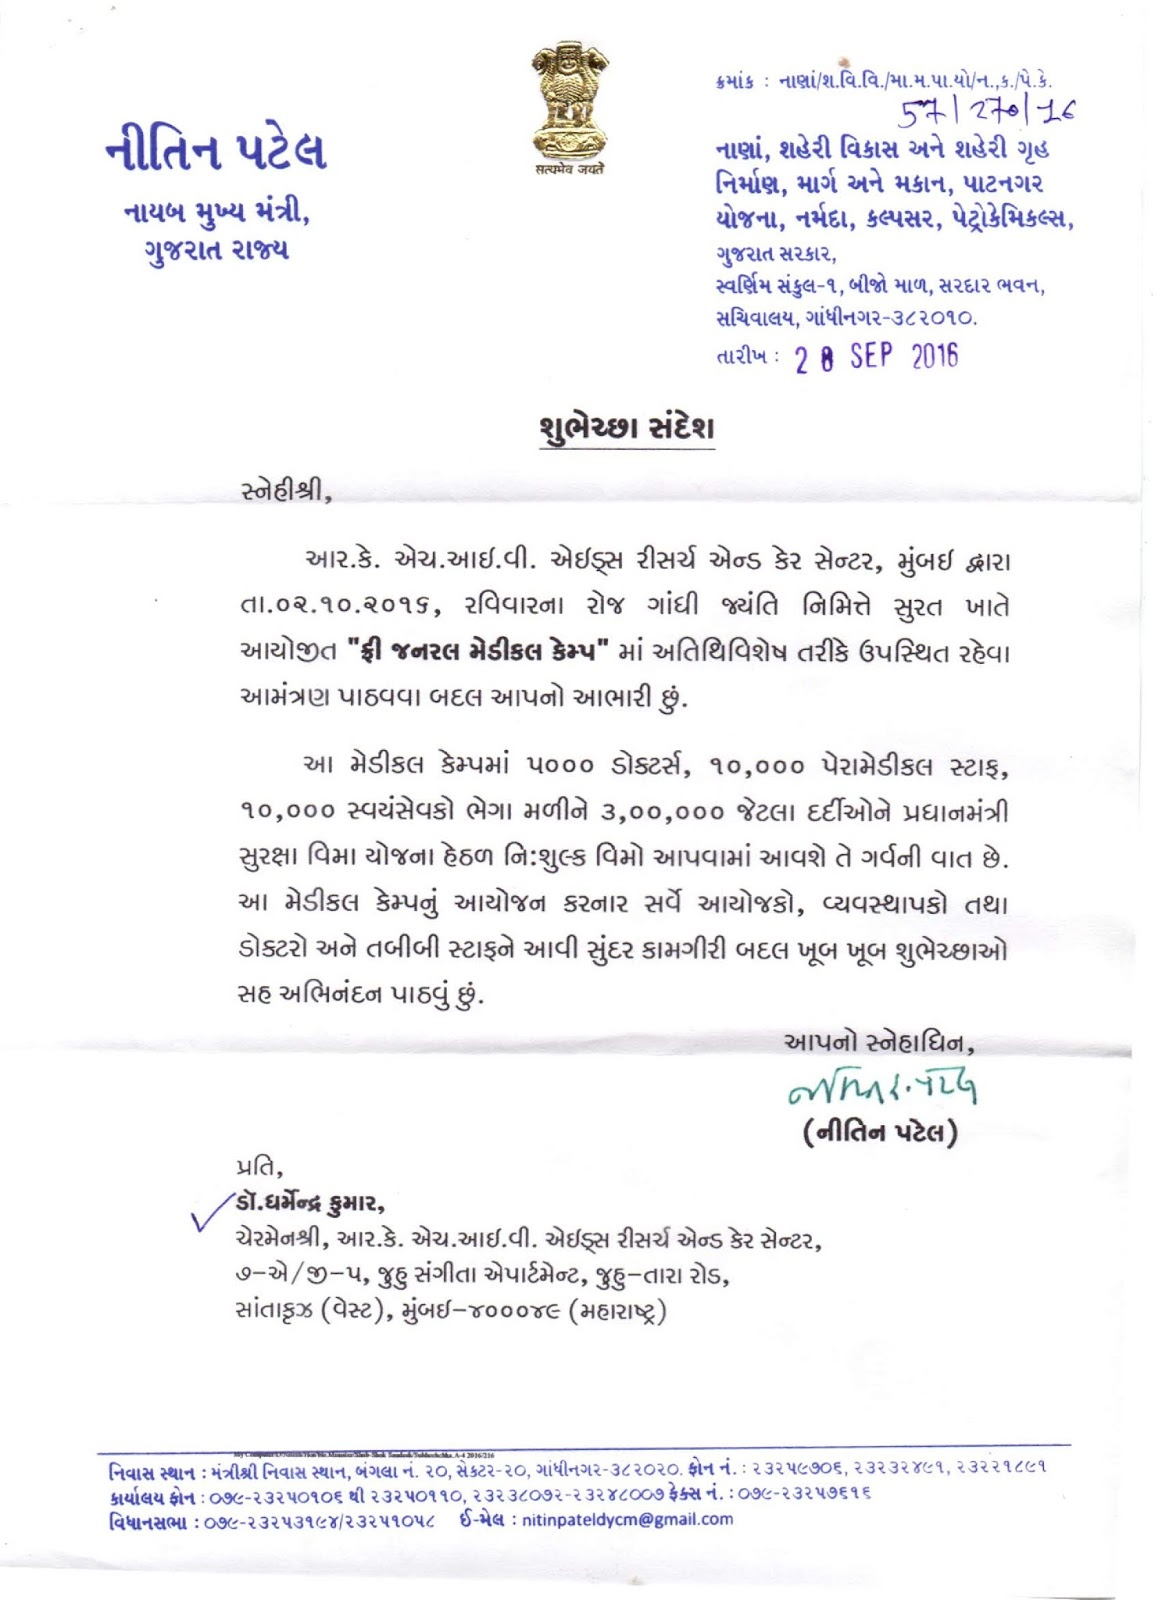 Appreciation letter to rk hiv aids research and care centre appreciation letter by shri nitin patel deputy chief minister gujarat to rk hiv aids research and care centre for organizing largest free mega medical spiritdancerdesigns Images